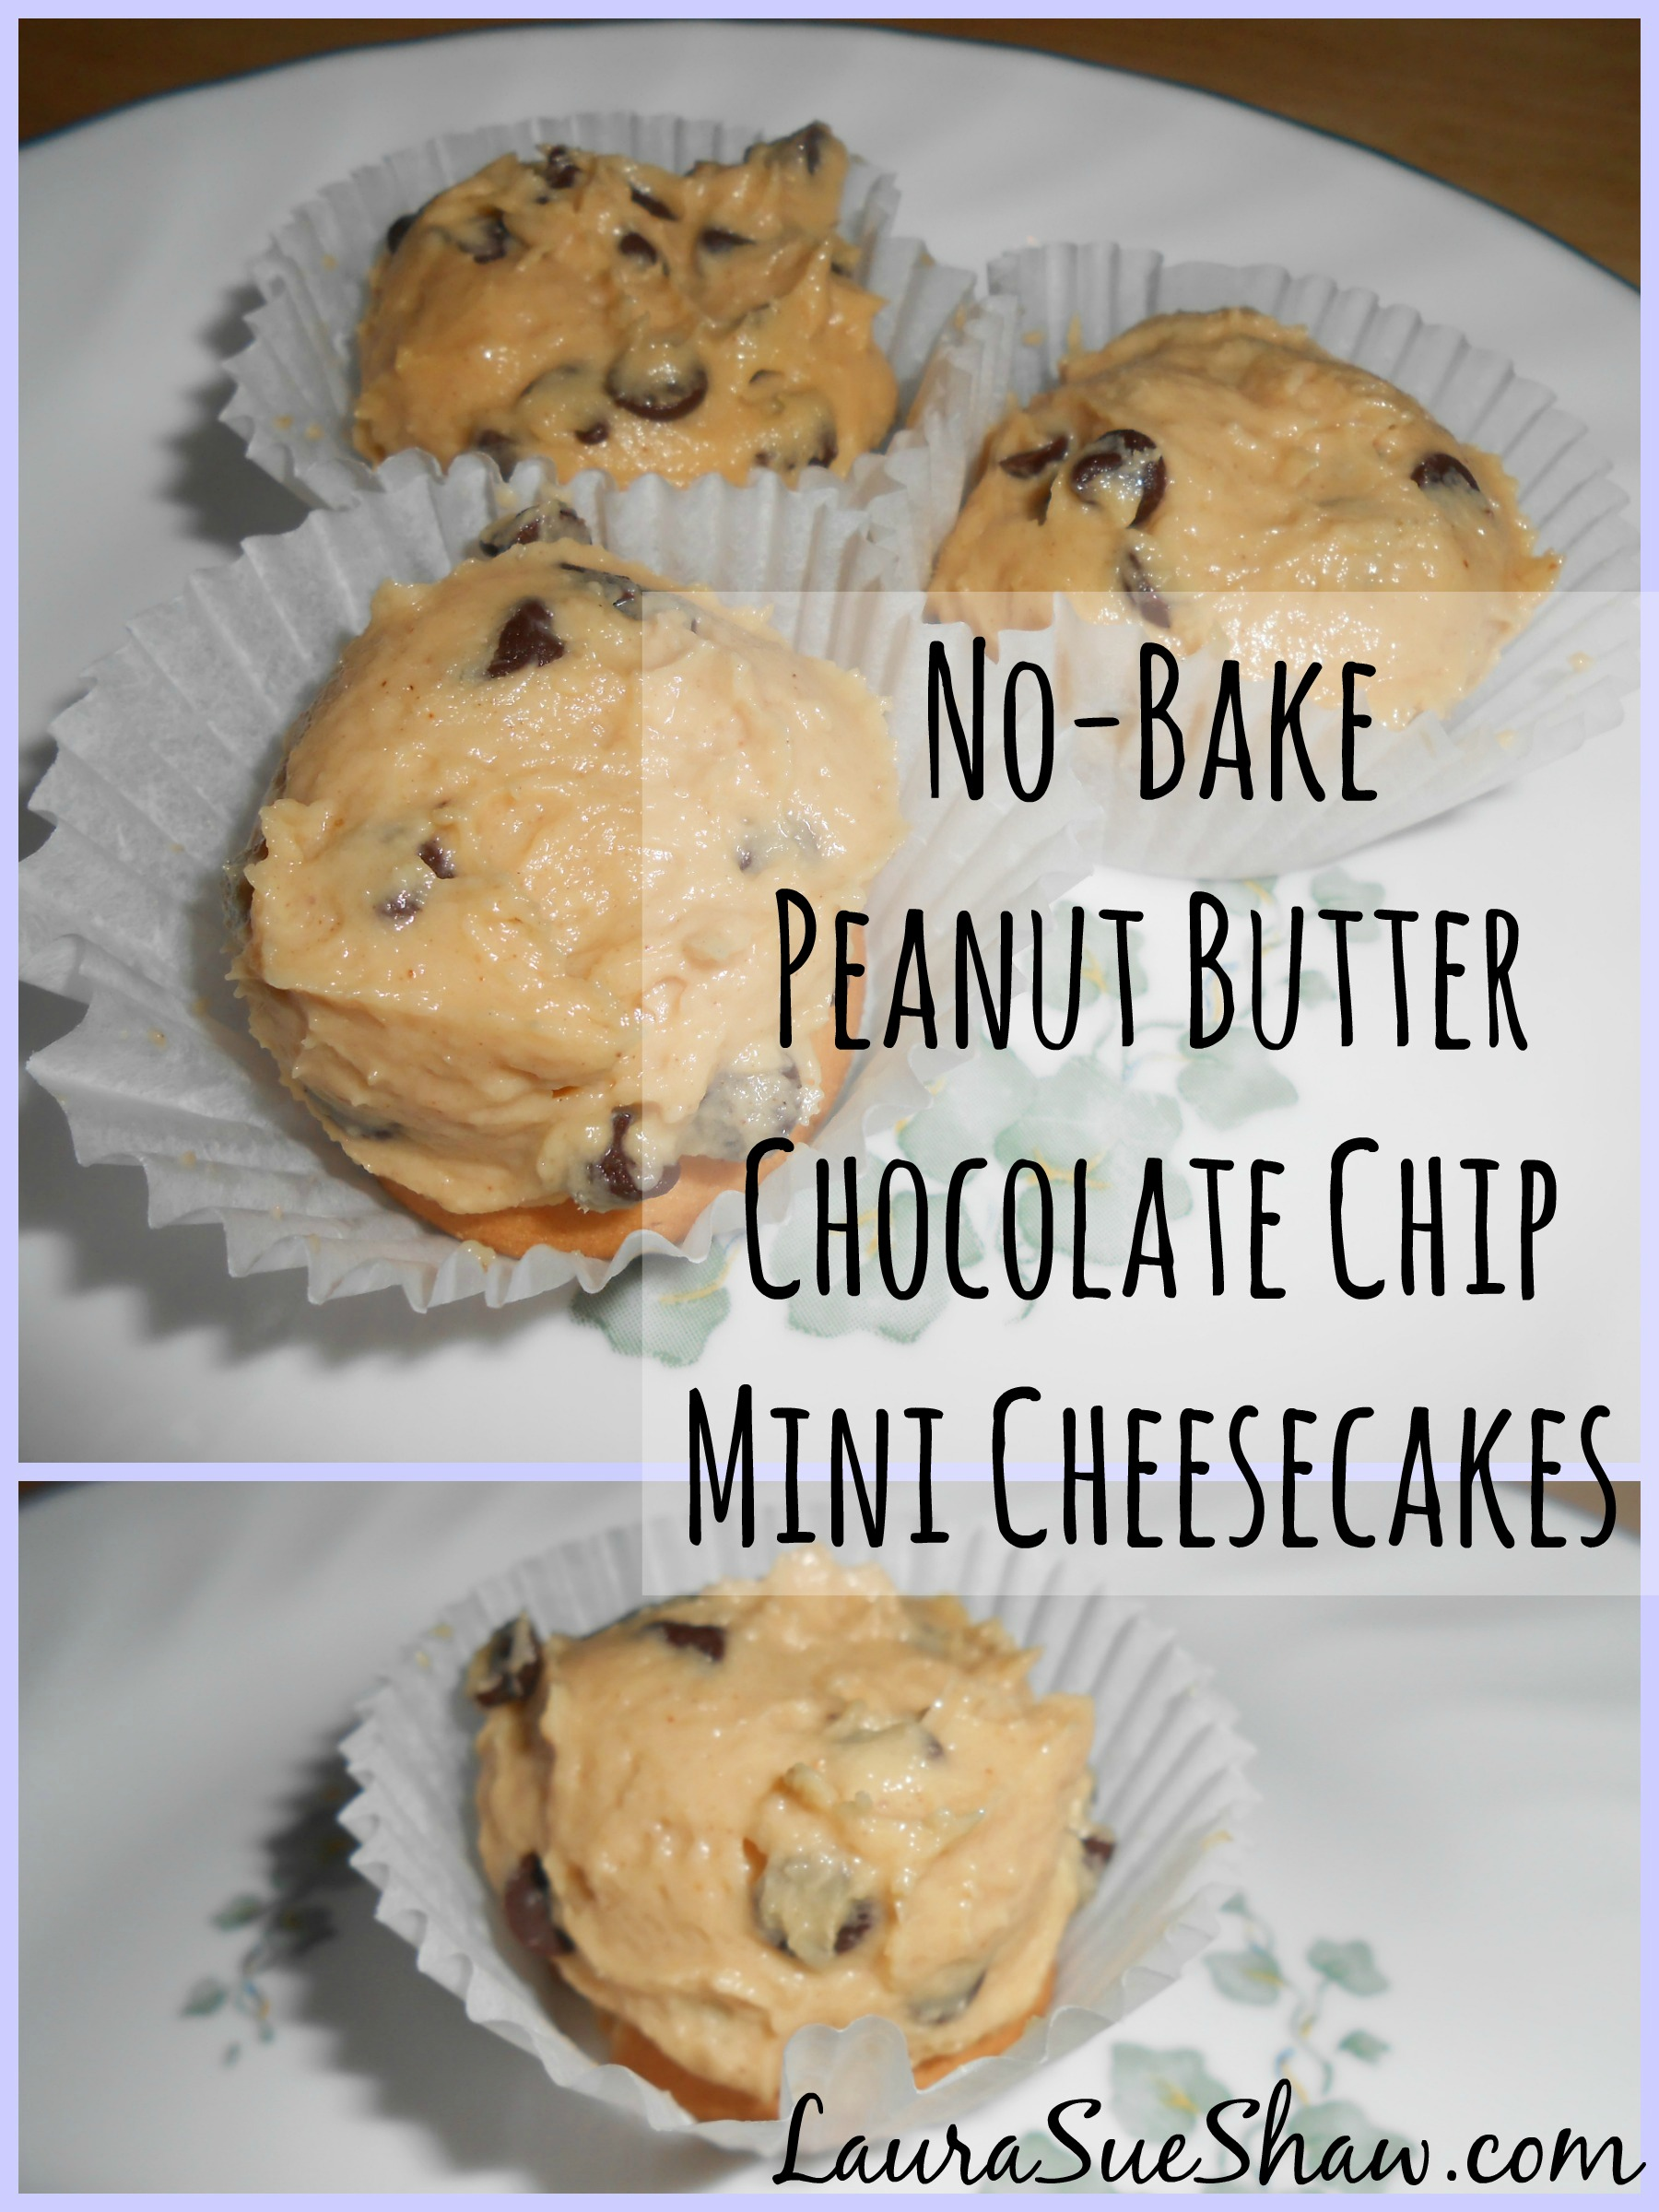 No-Bake Peanut Butter Chocolate Chip Mini Cheesecakes